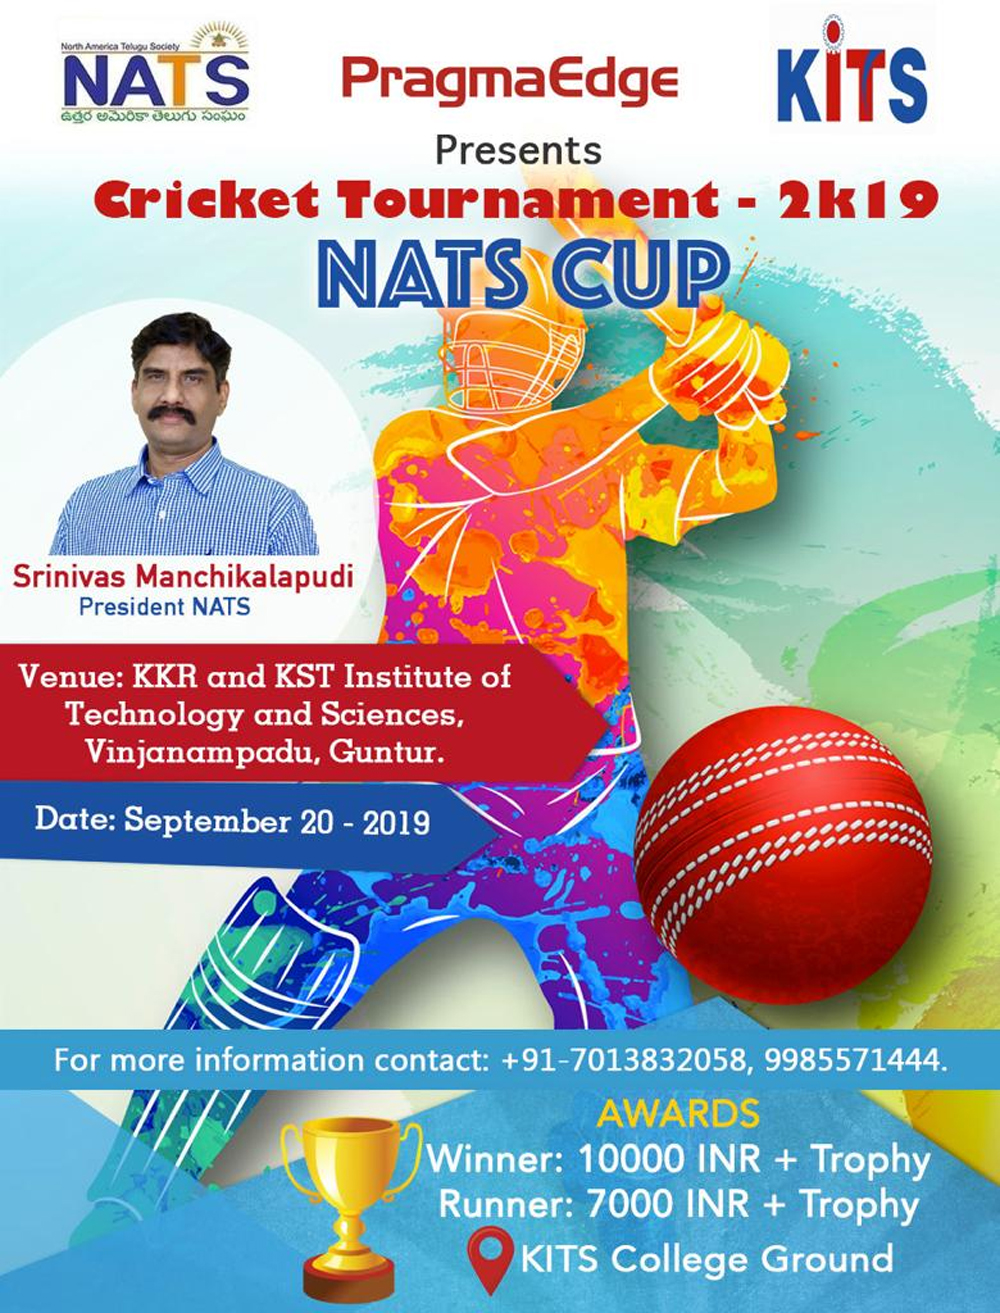 -Nats Cricket Tournament Telugu Nri News Updates